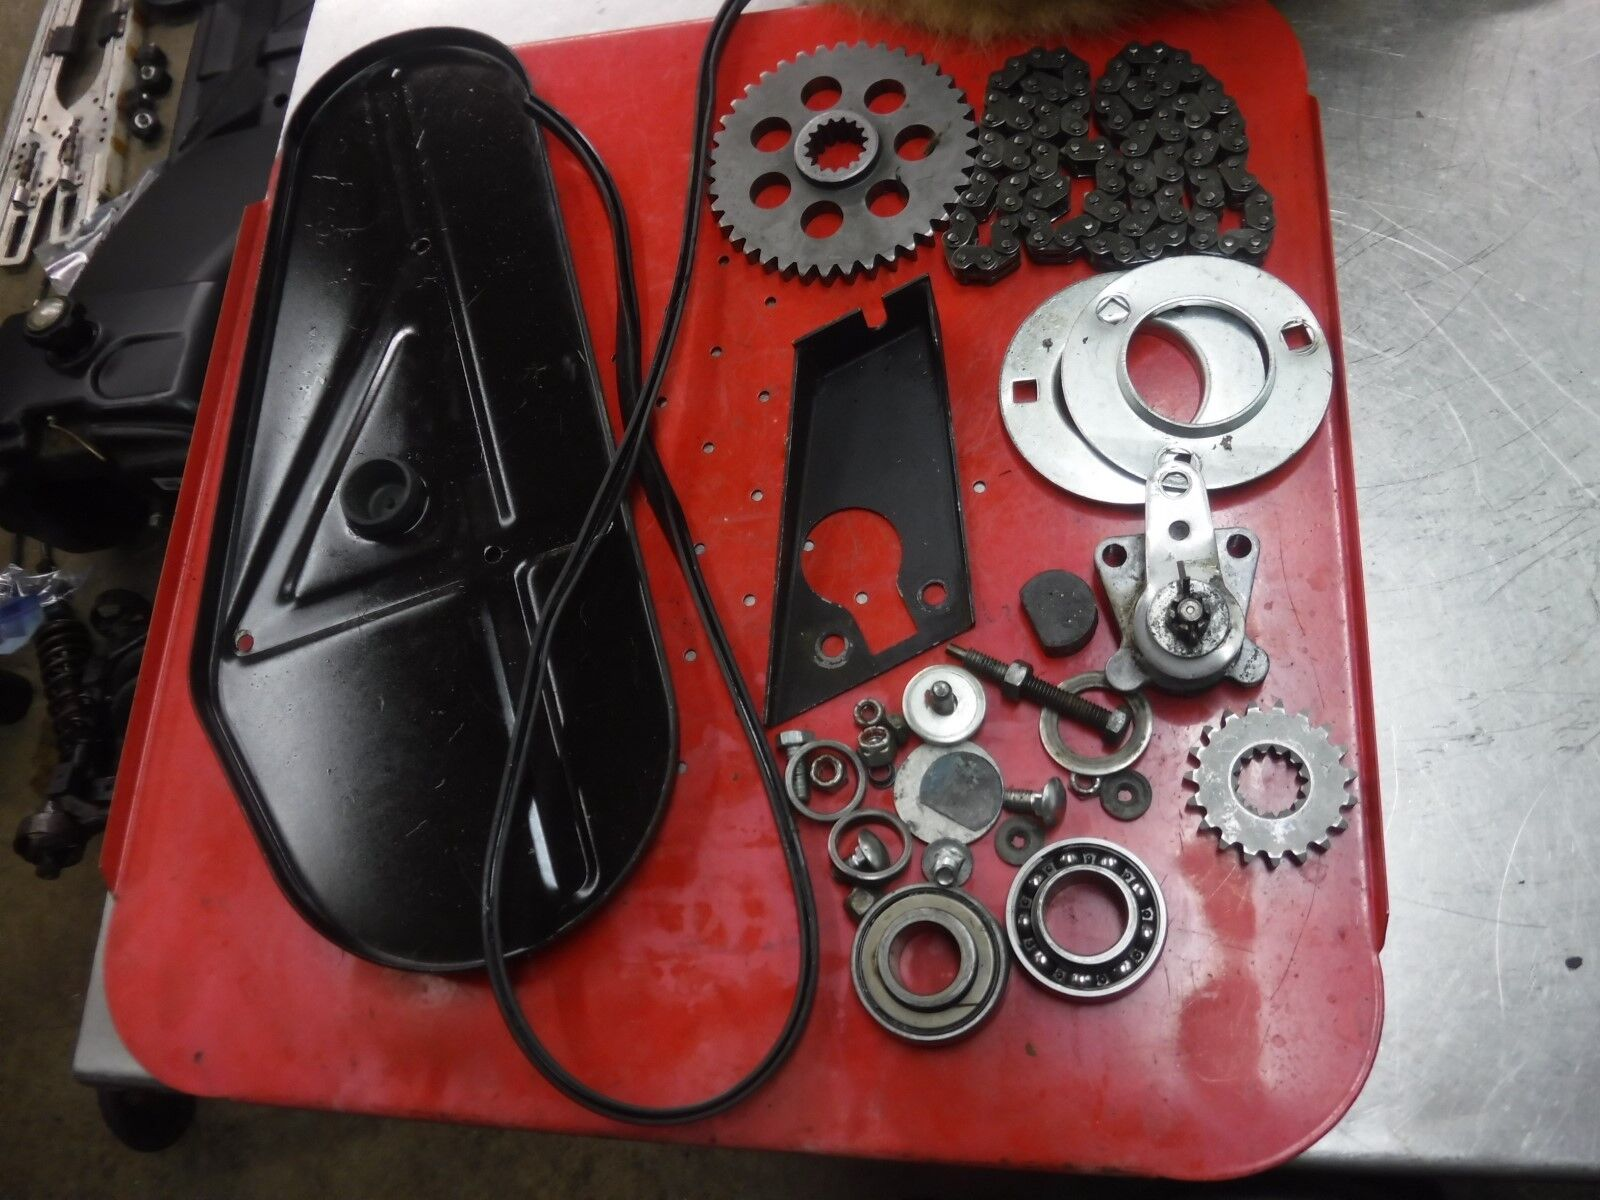 1979 ARCTIC CAT LYNX 2000 S snow parts: CHAINCASE COVER and INARDS